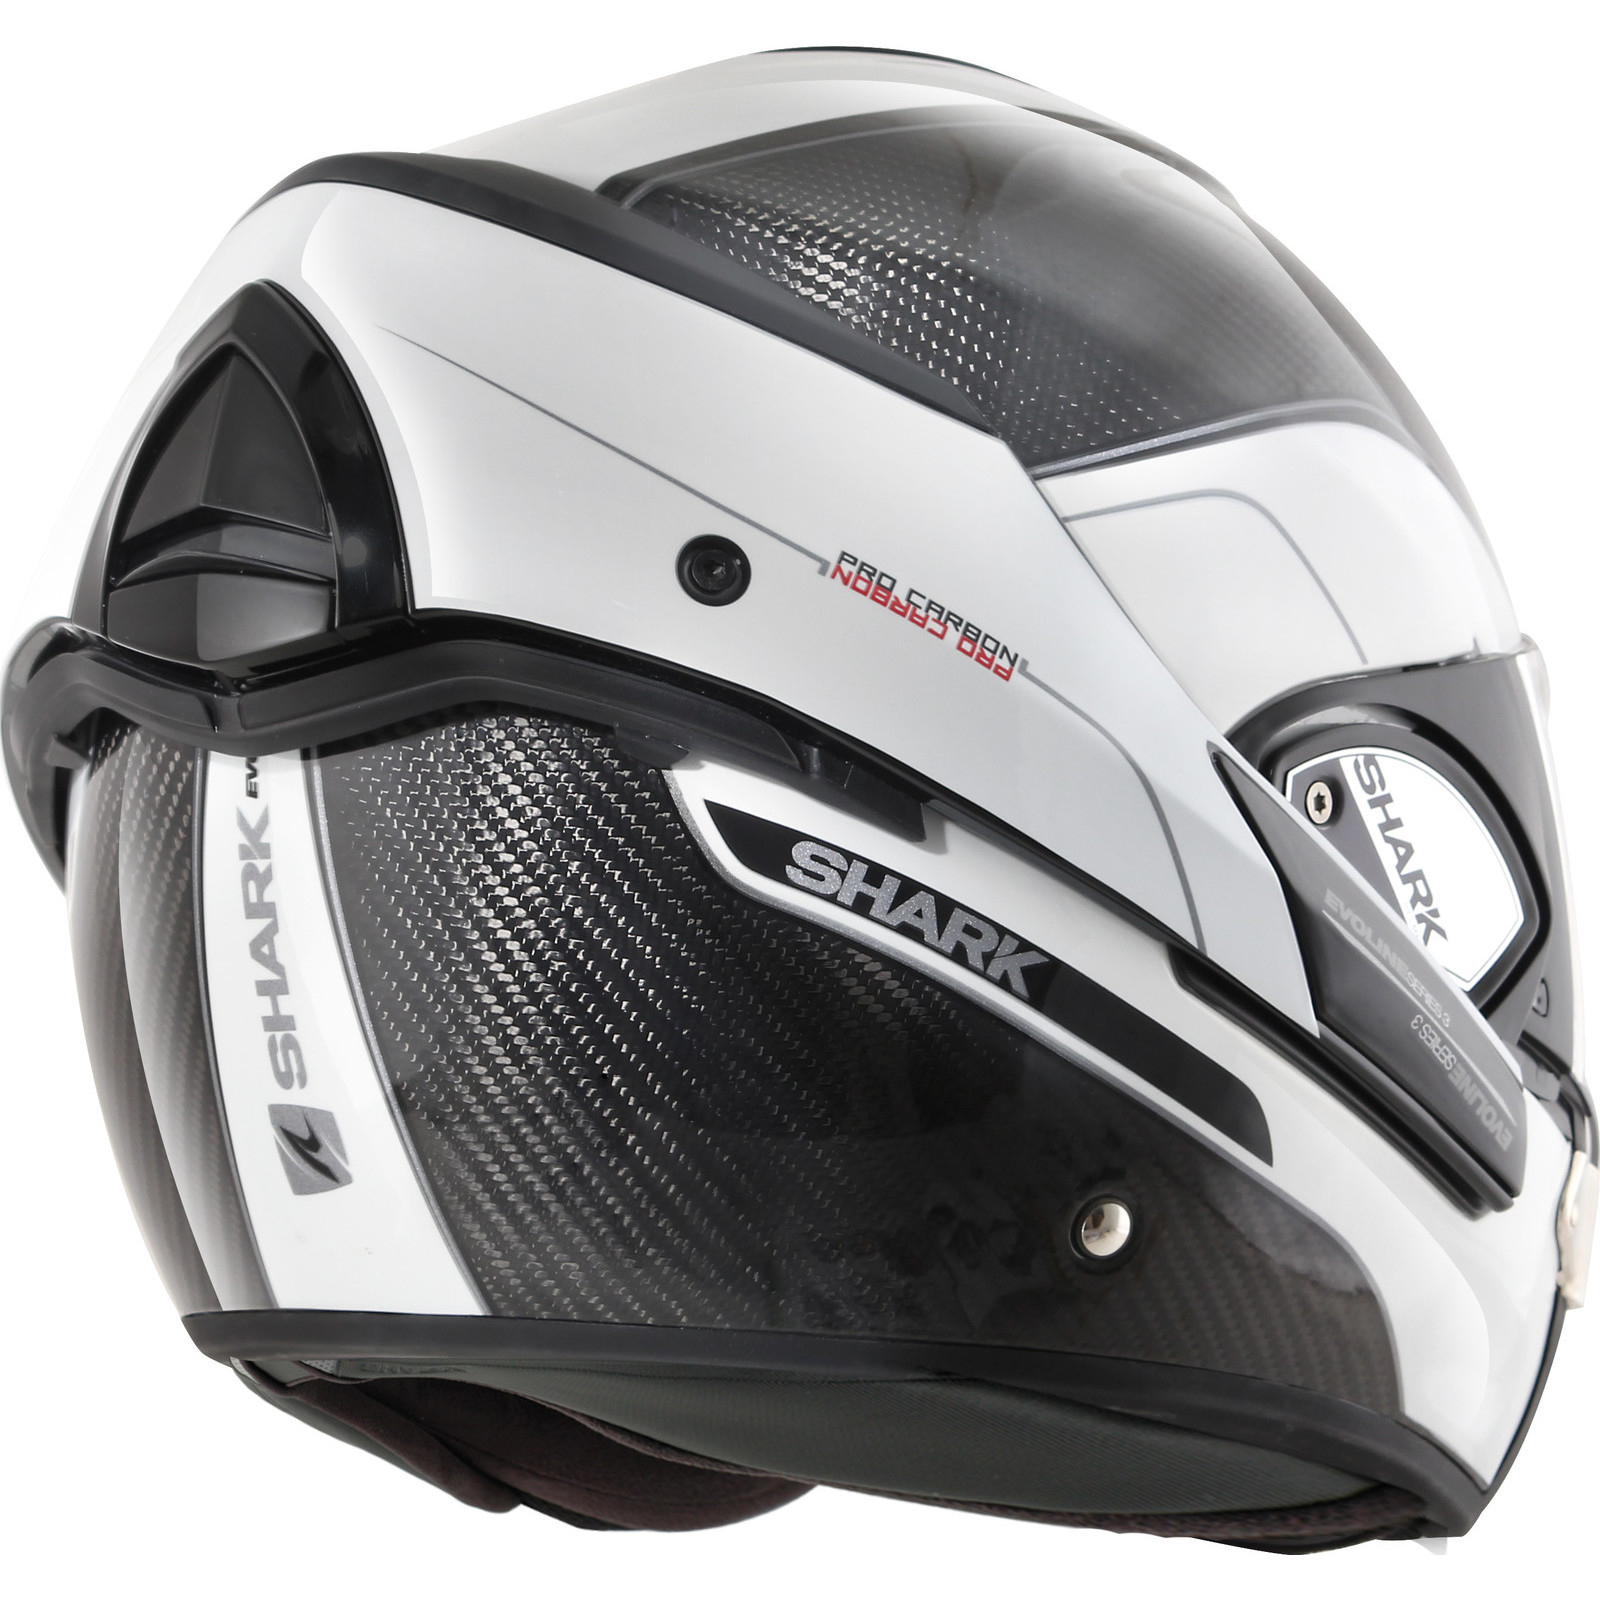 45106102 Sentinel HE9900EDWAXS - Shark Evoline Pro Carbon Flip Front Motorcycle  Helmet XS Carbon Red Anthracite (DWA